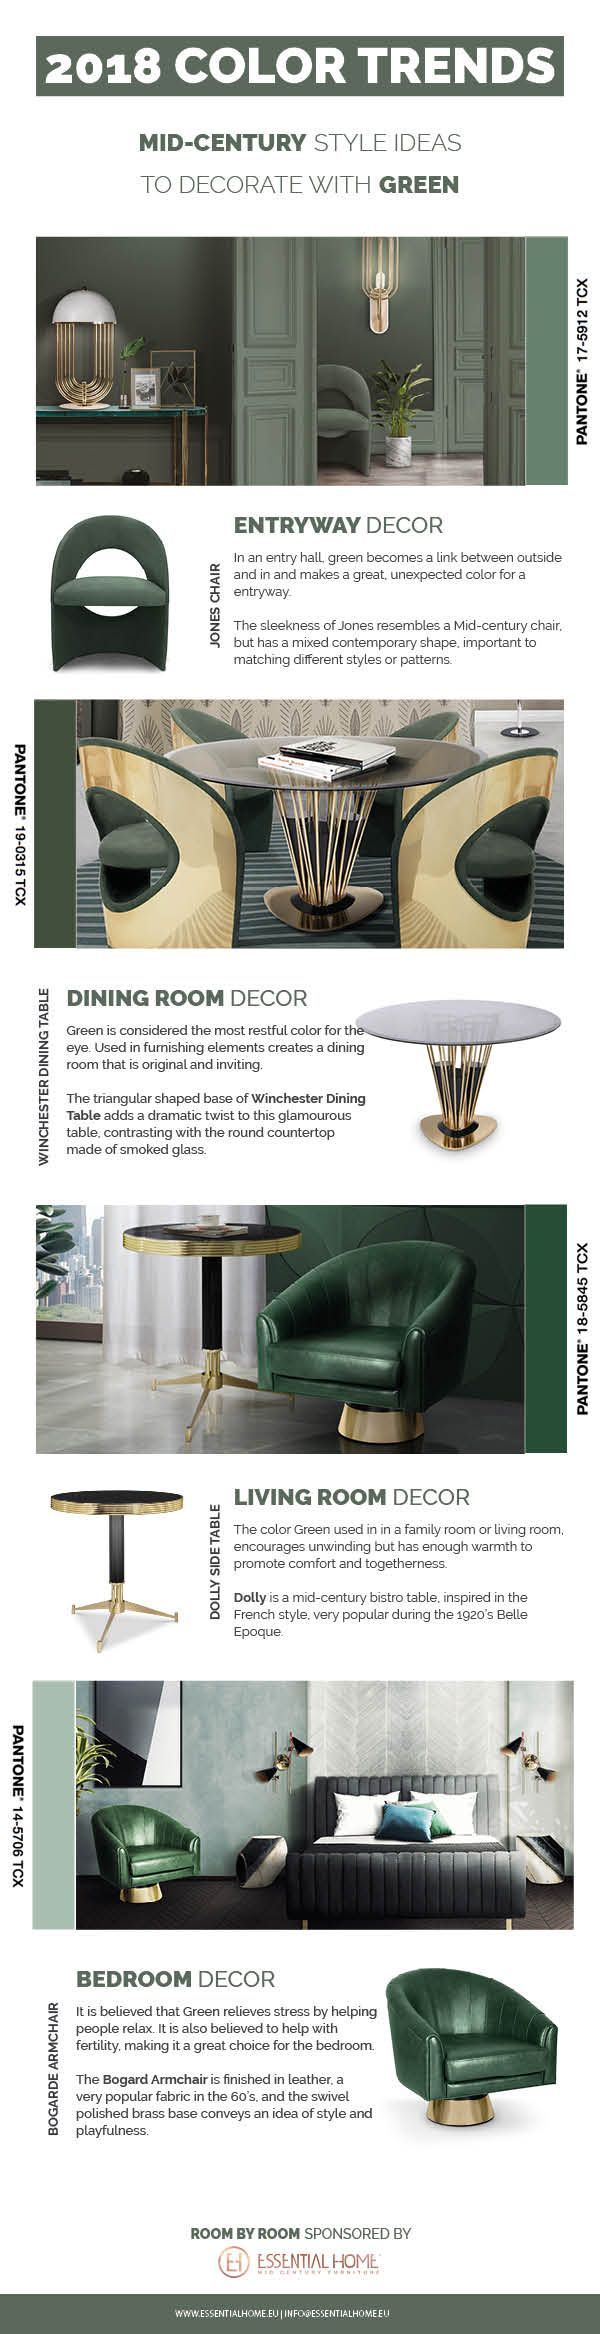 Get your tips on the next color trends! Start thinking about 2018 color trends, how to rock green decor in your mid-century home! essentialhome.eu